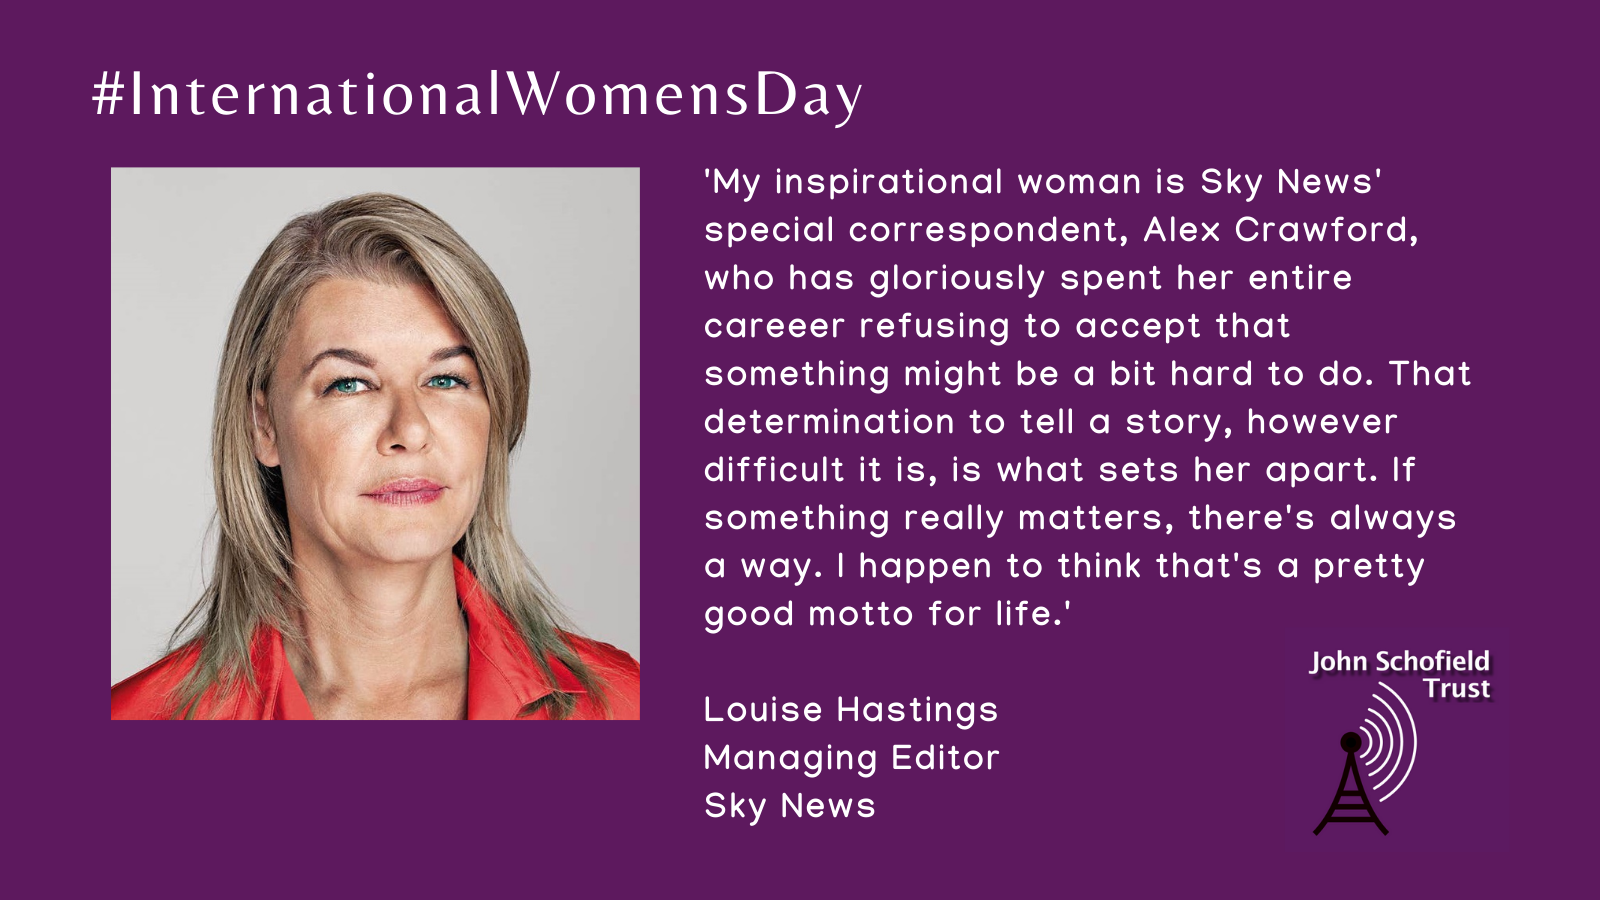 Louise Hastings's inspirational woman for #IWD